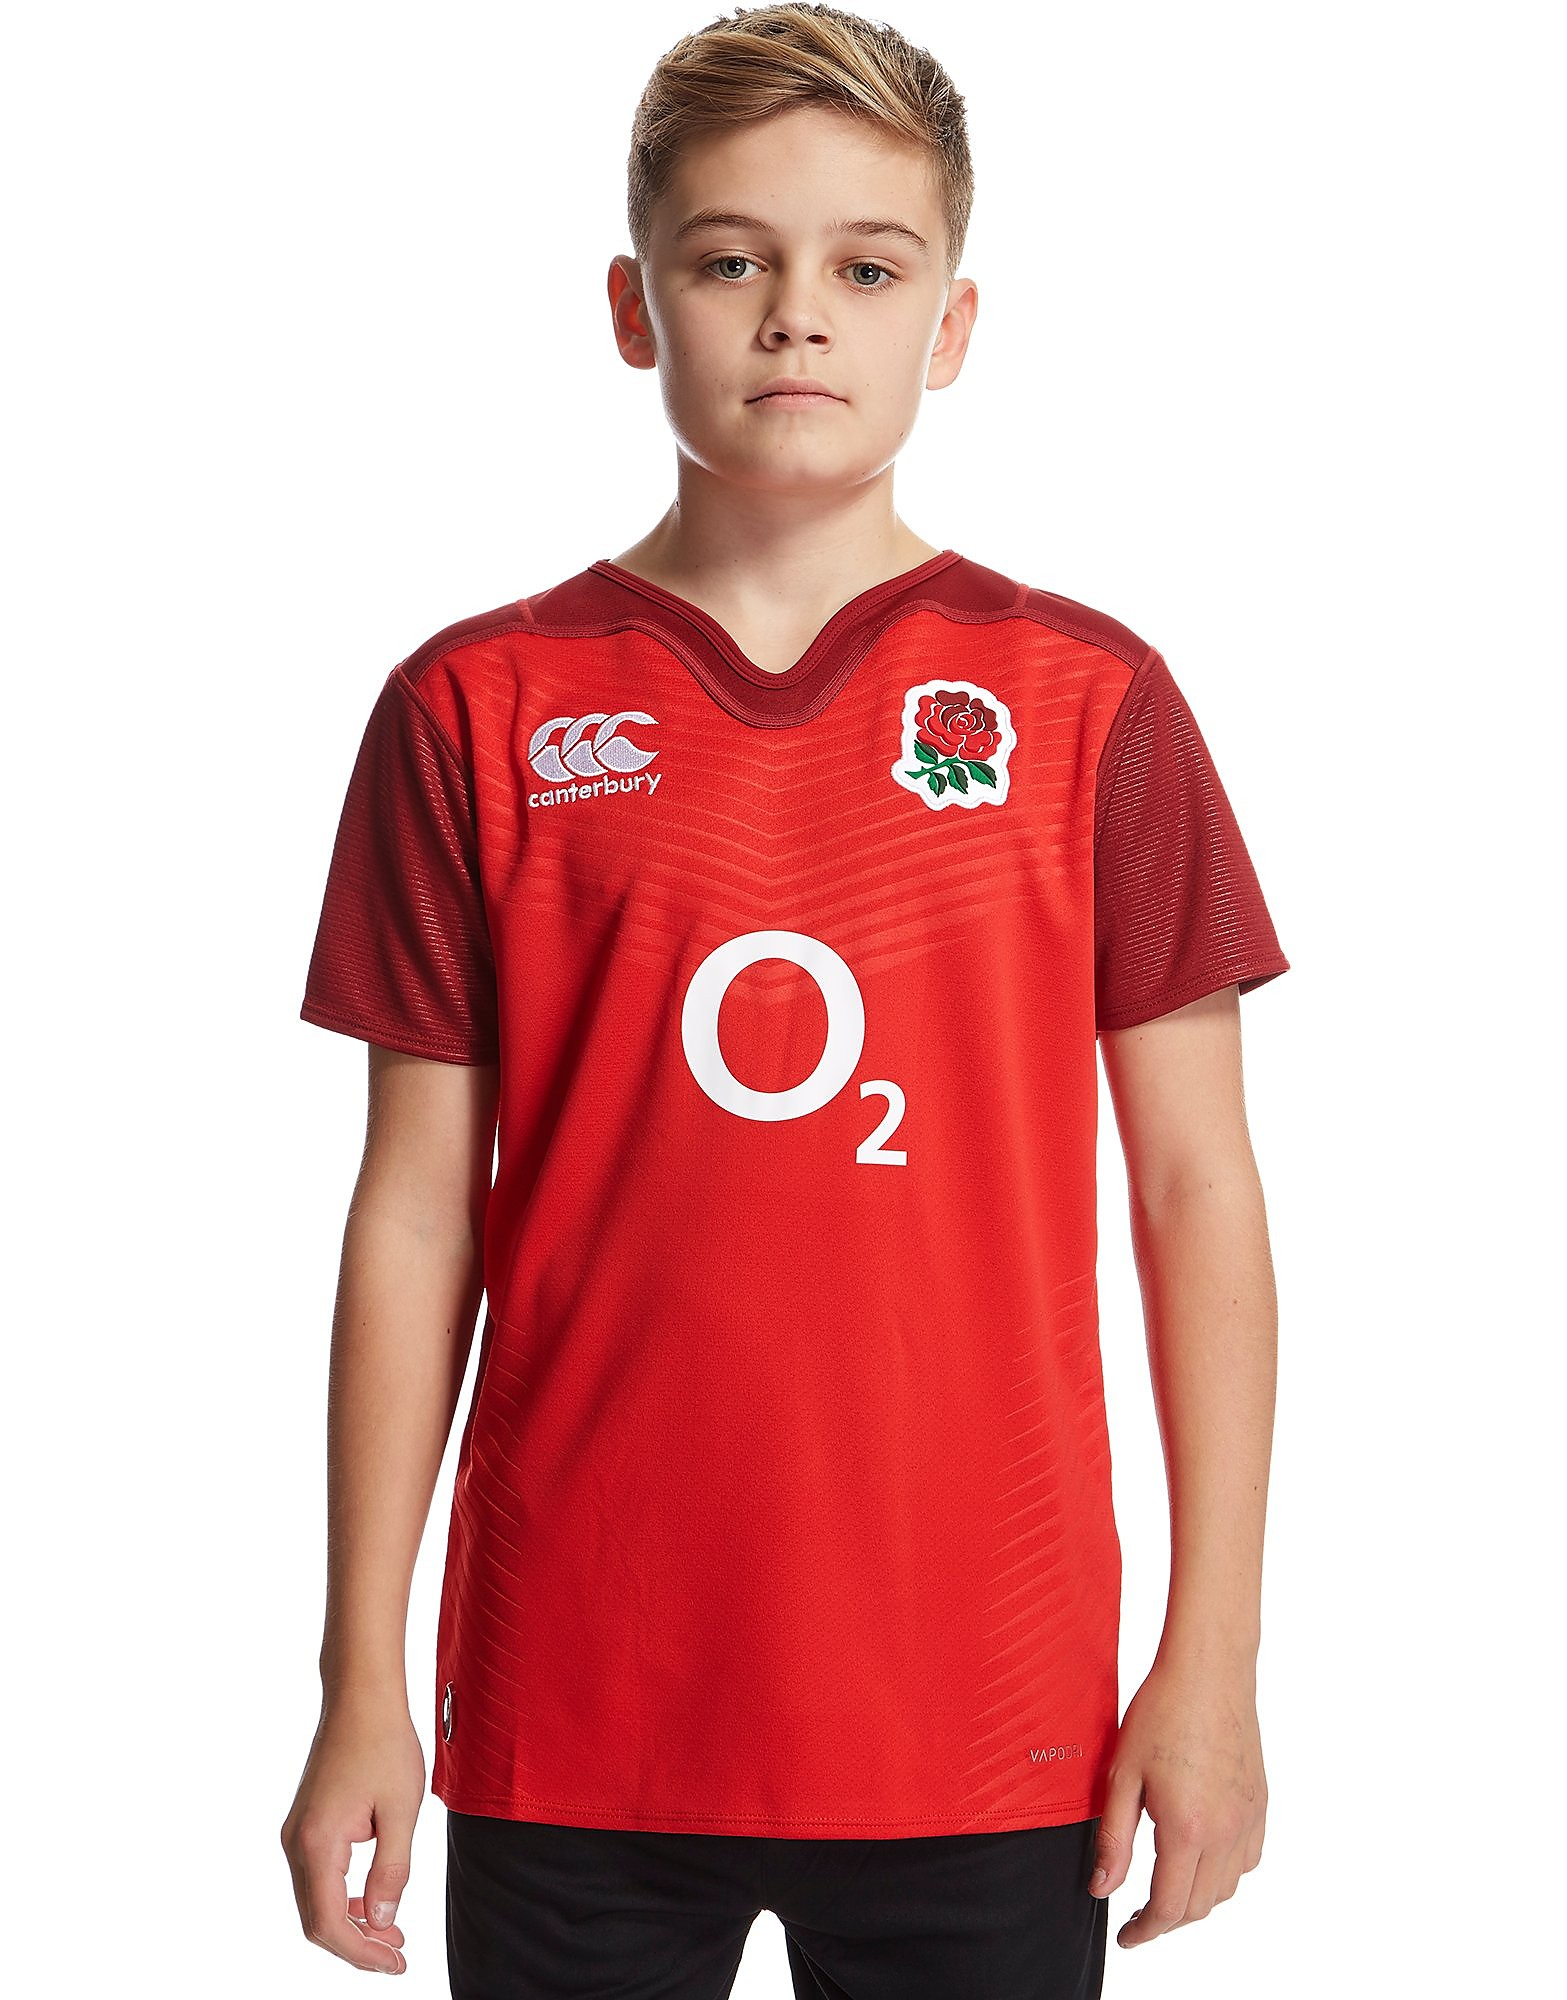 Canterbury England RFU Alternate 2015/16 Shirt Junior